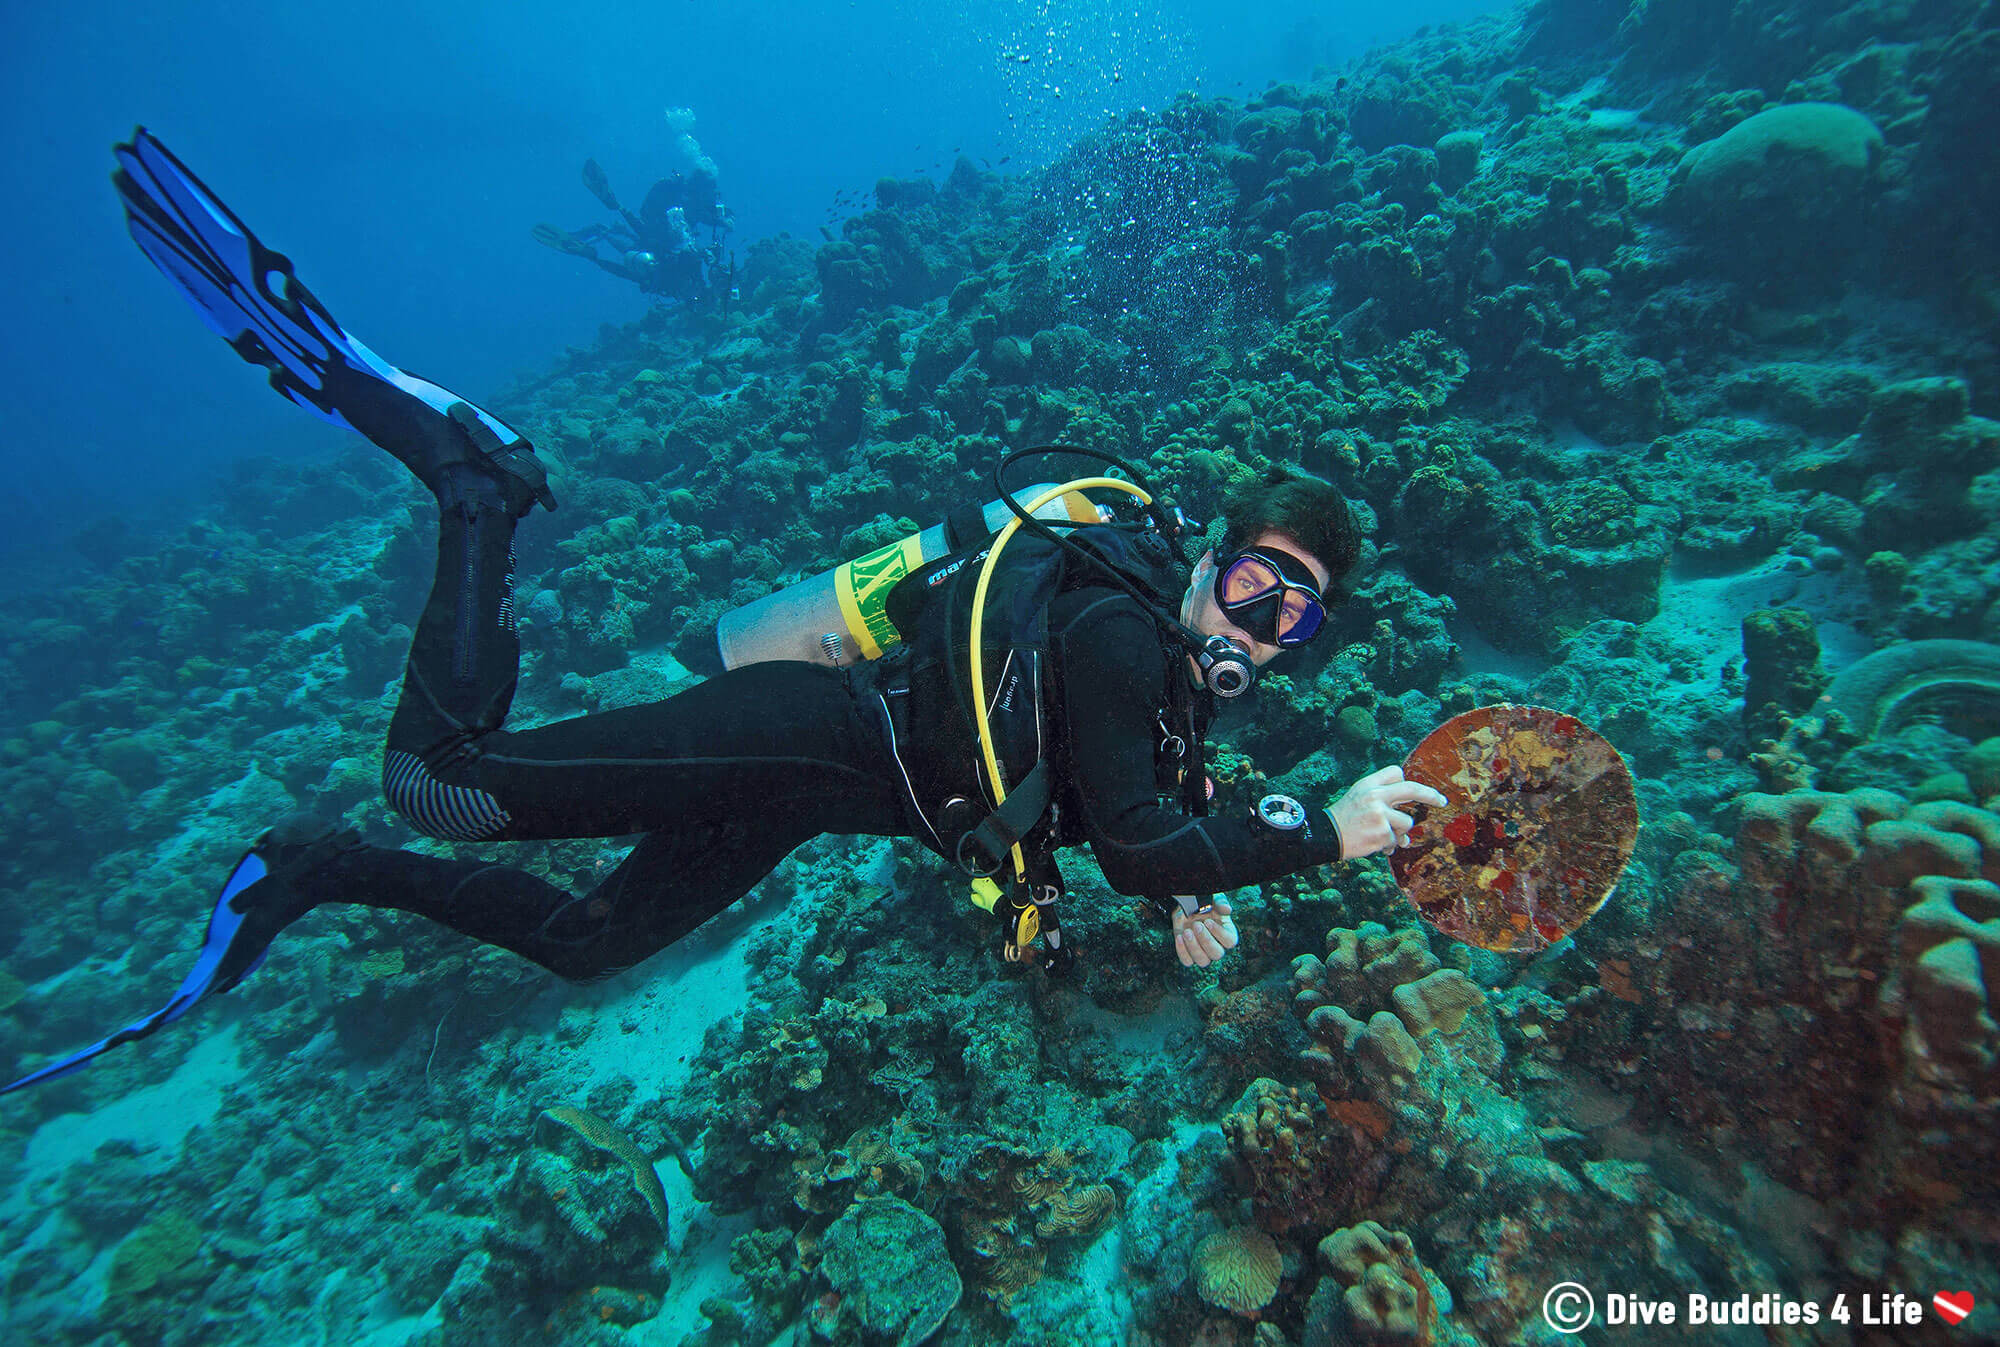 Joey Finding A Metal Disc On His Clean Up Dive In The Bonaire Sailing Club Marina With Dive Friends